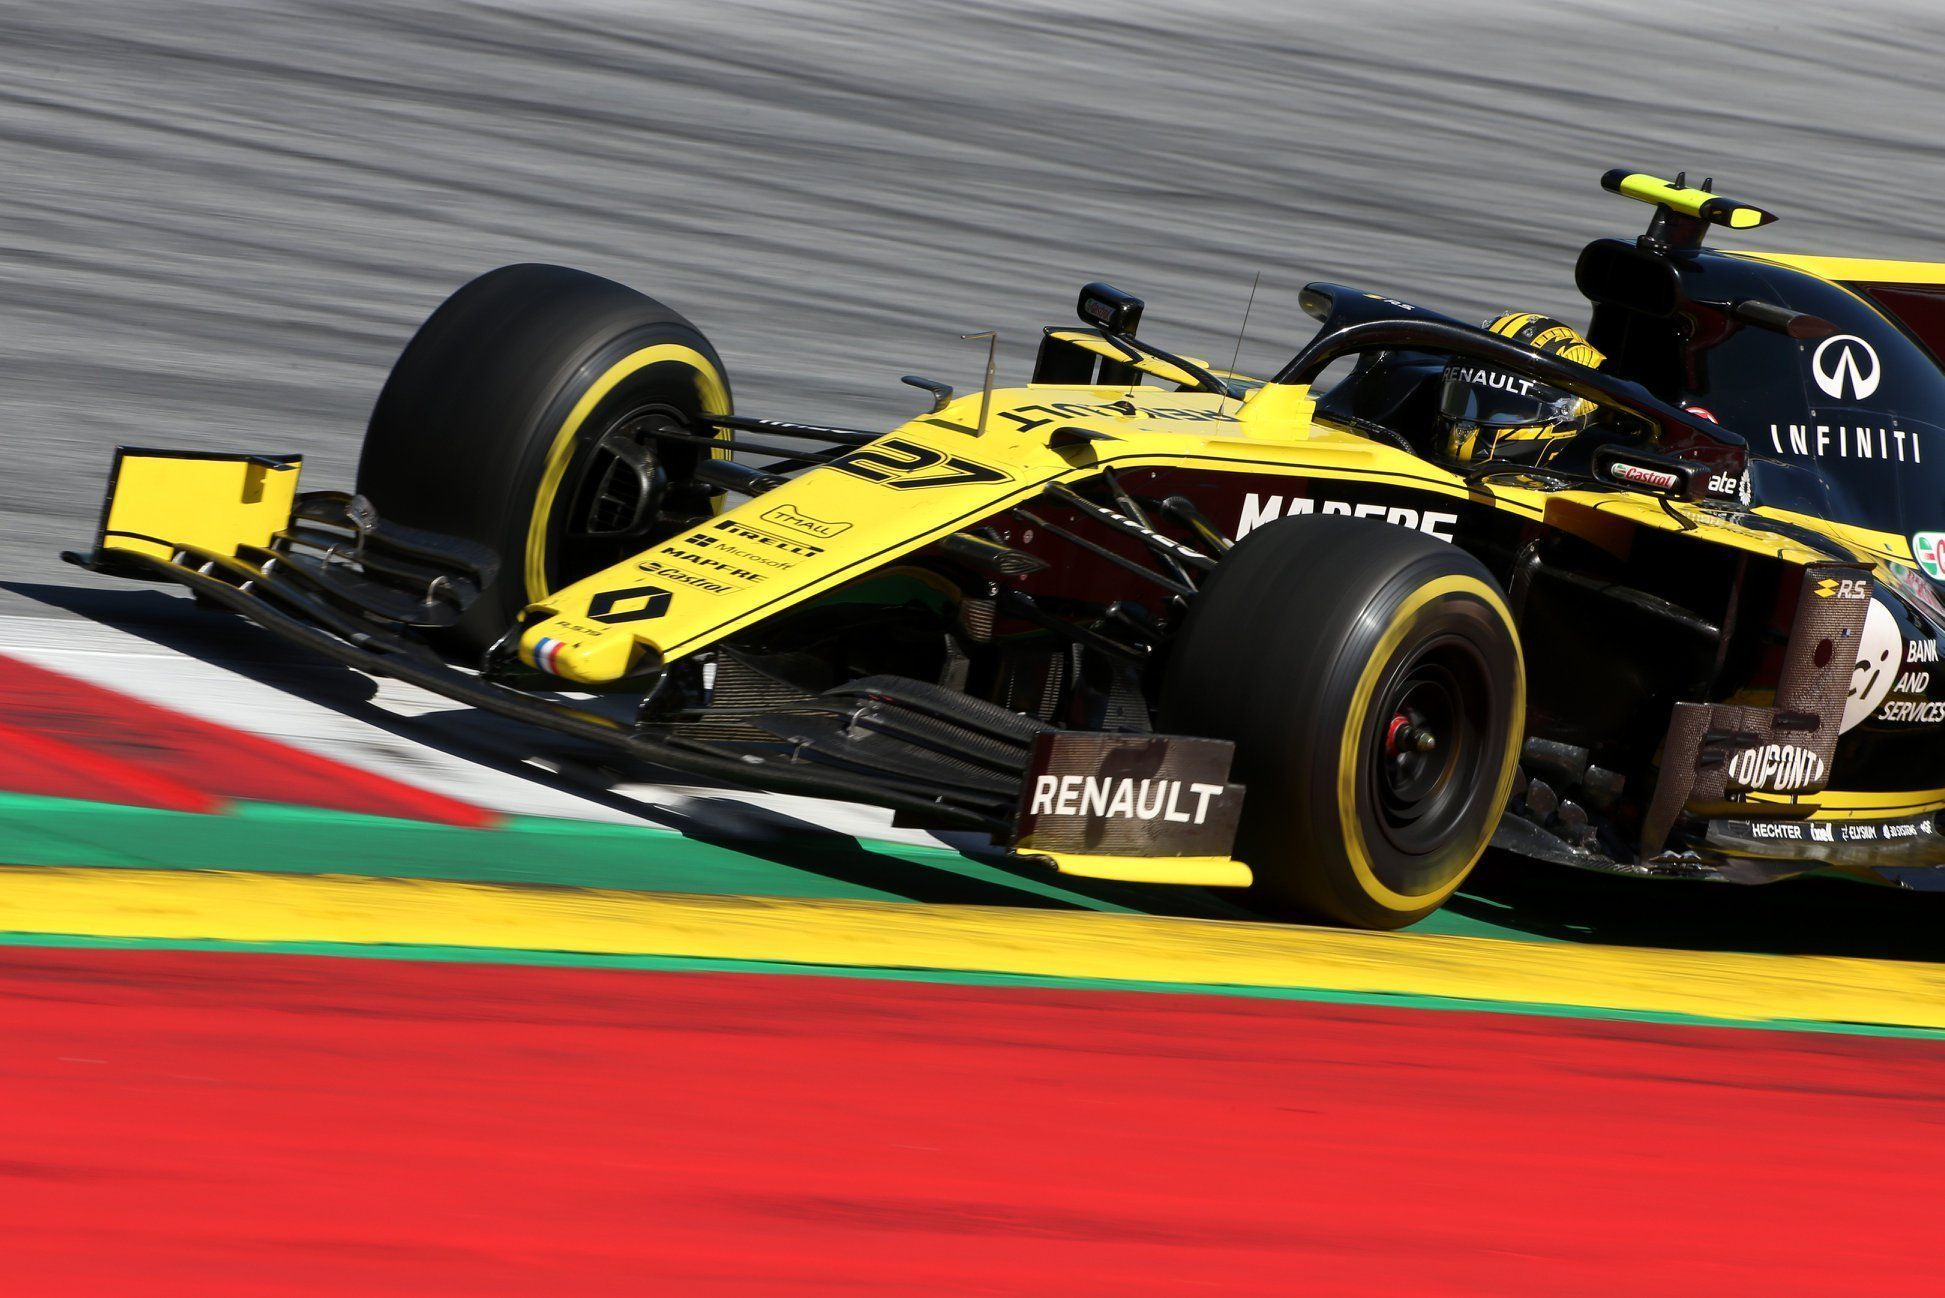 Renault, Mexico GP F1 tyre choice